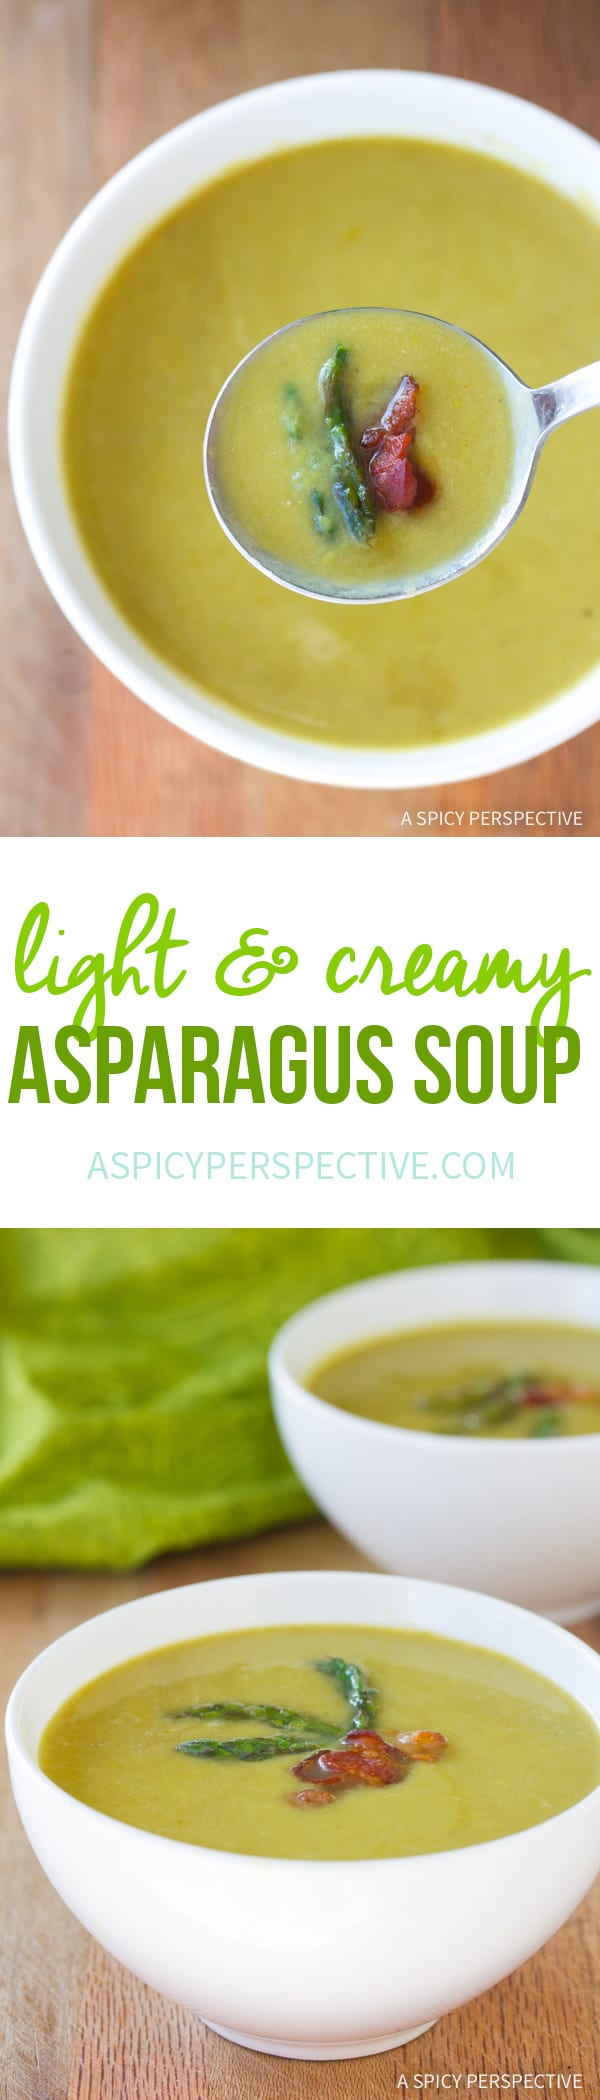 Epic! Light And Creamy Asparagus Soup Recipe #healthy #lowcarb